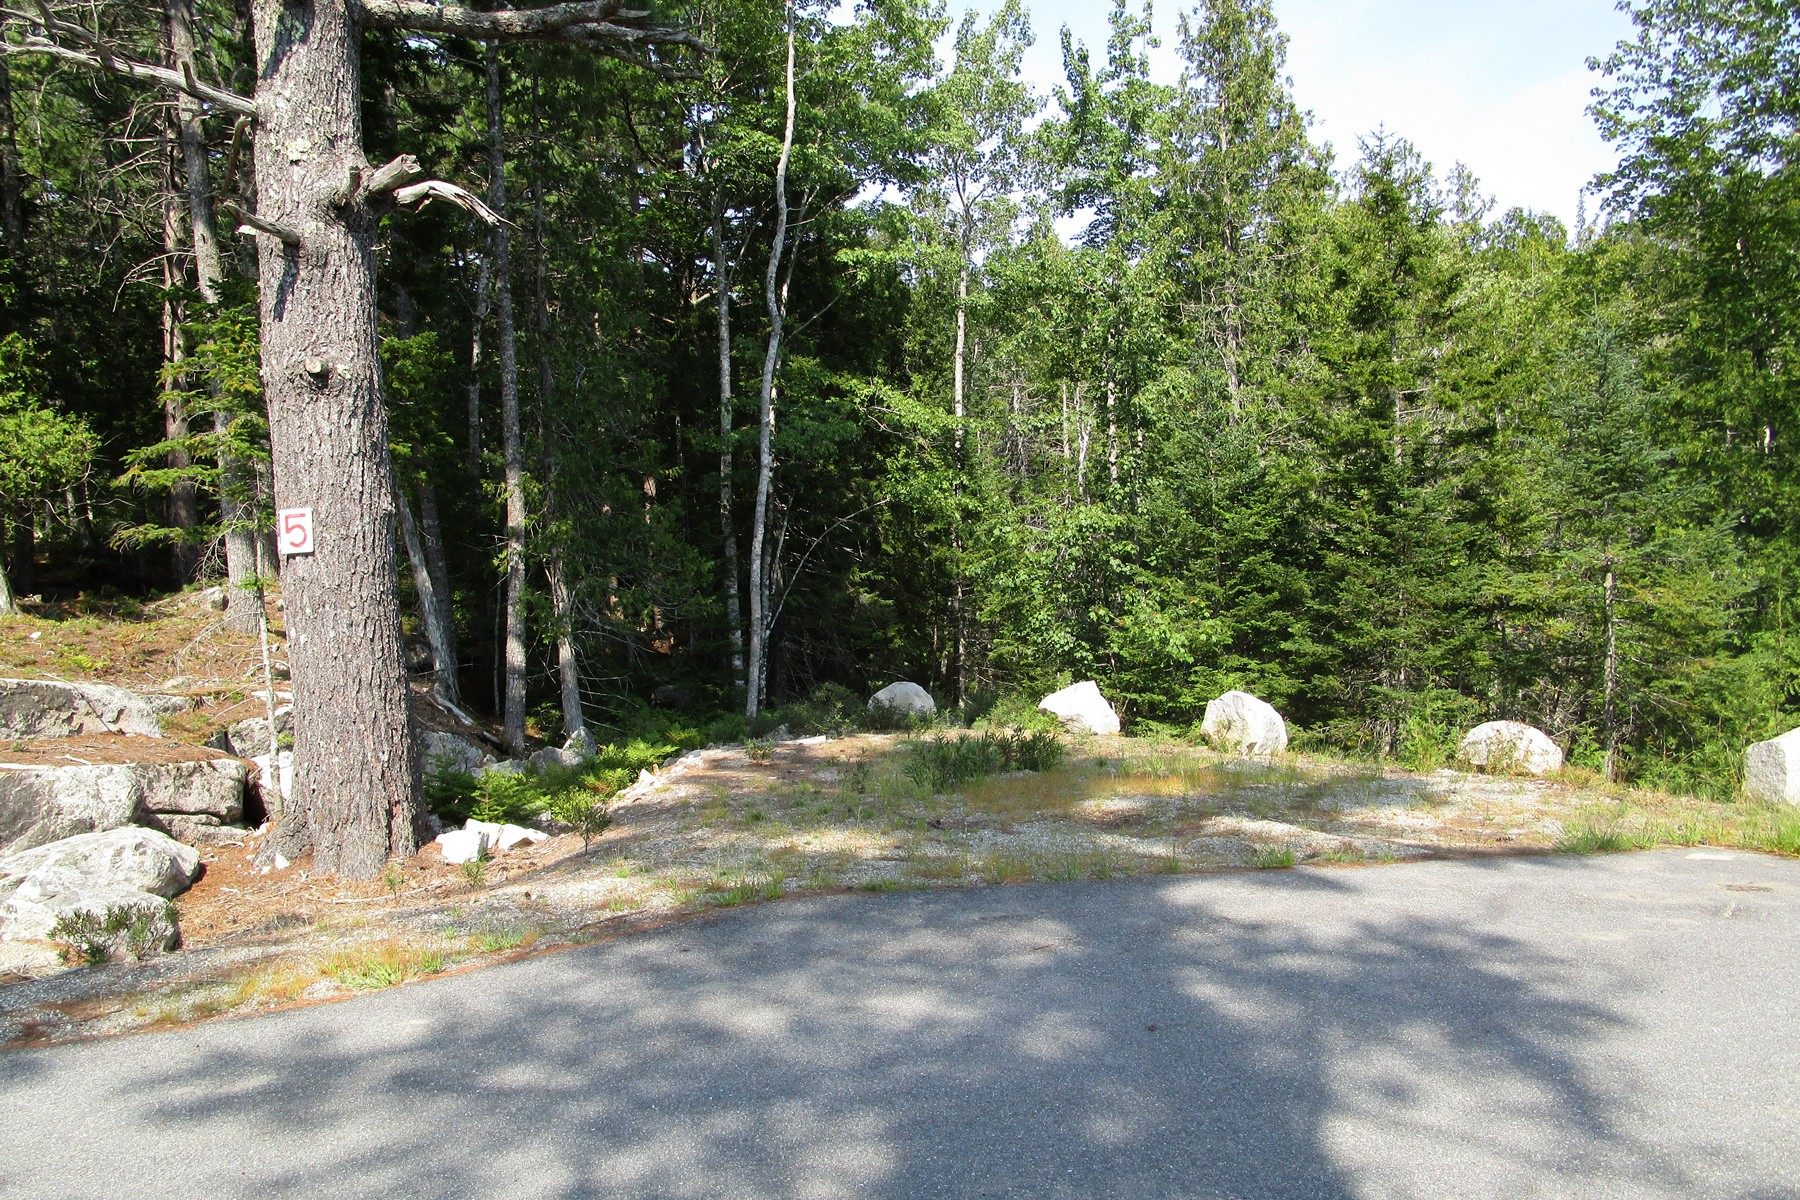 Terreno por un Venta en Echo Woods Road Lot 5 Lot 5 Echo Woods Road Mount Desert, Maine, 04660 Estados Unidos